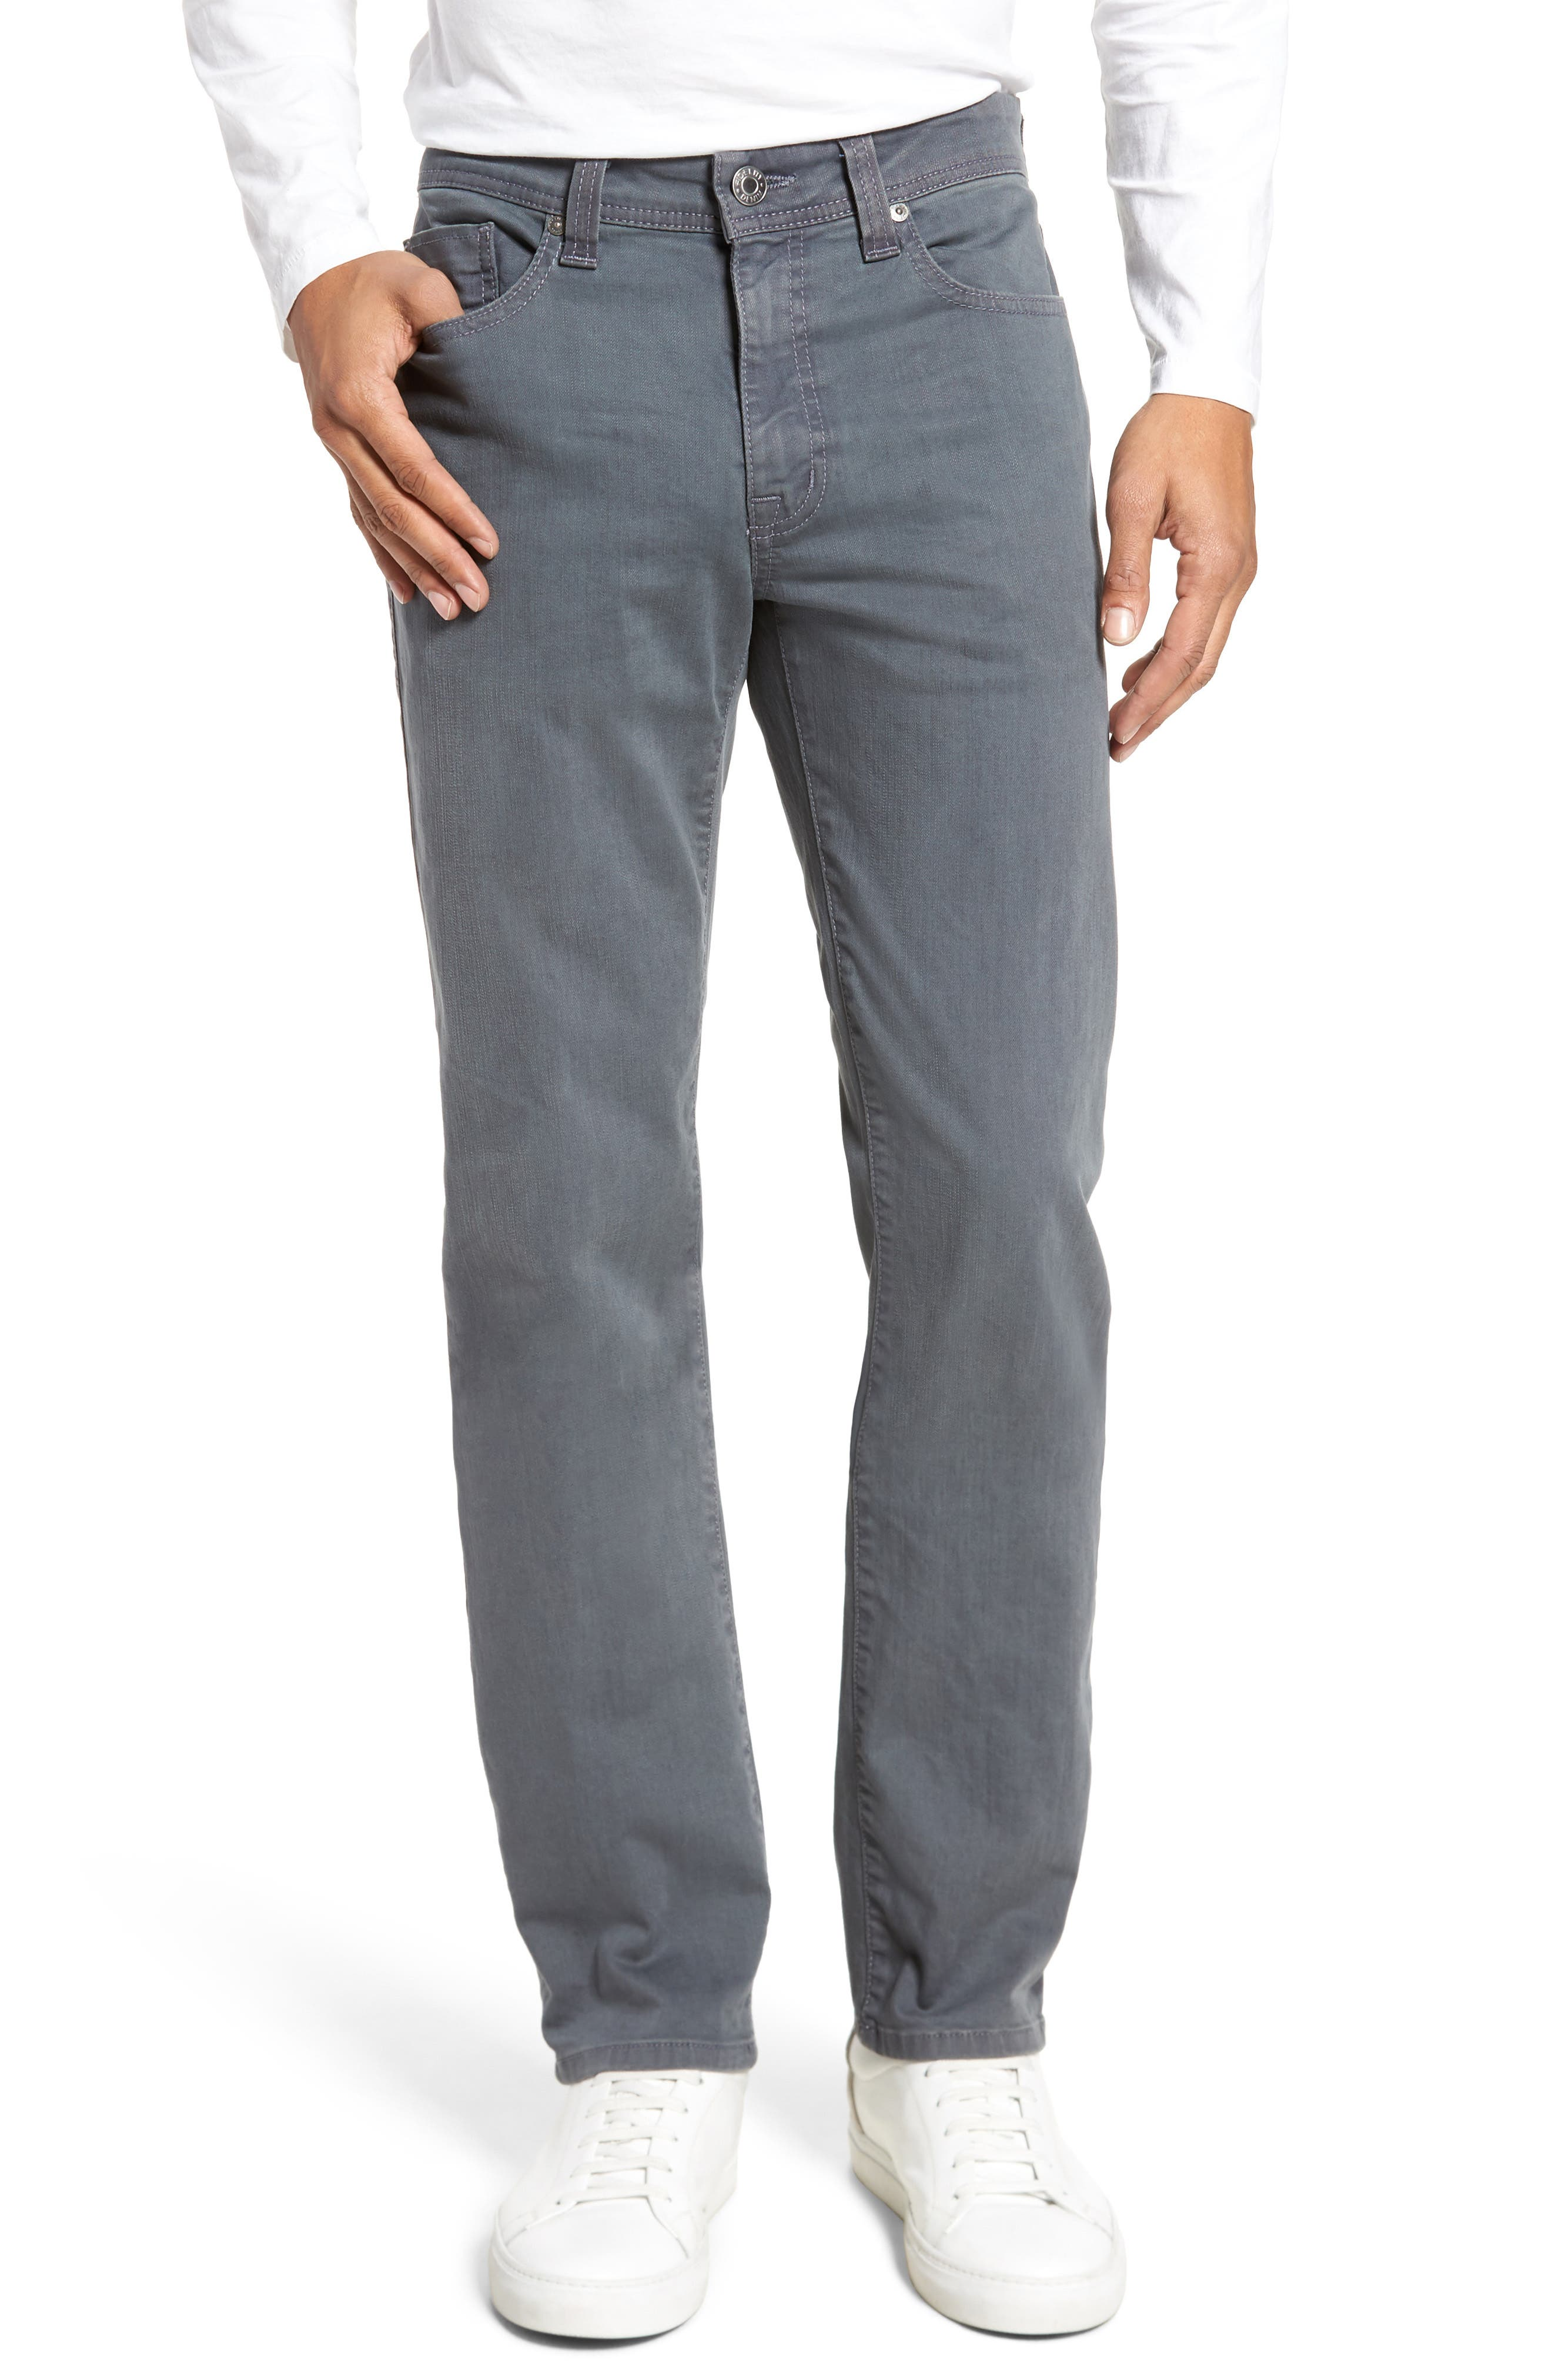 Jimmy Slim Straight Fit Jeans,                             Main thumbnail 1, color,                             020